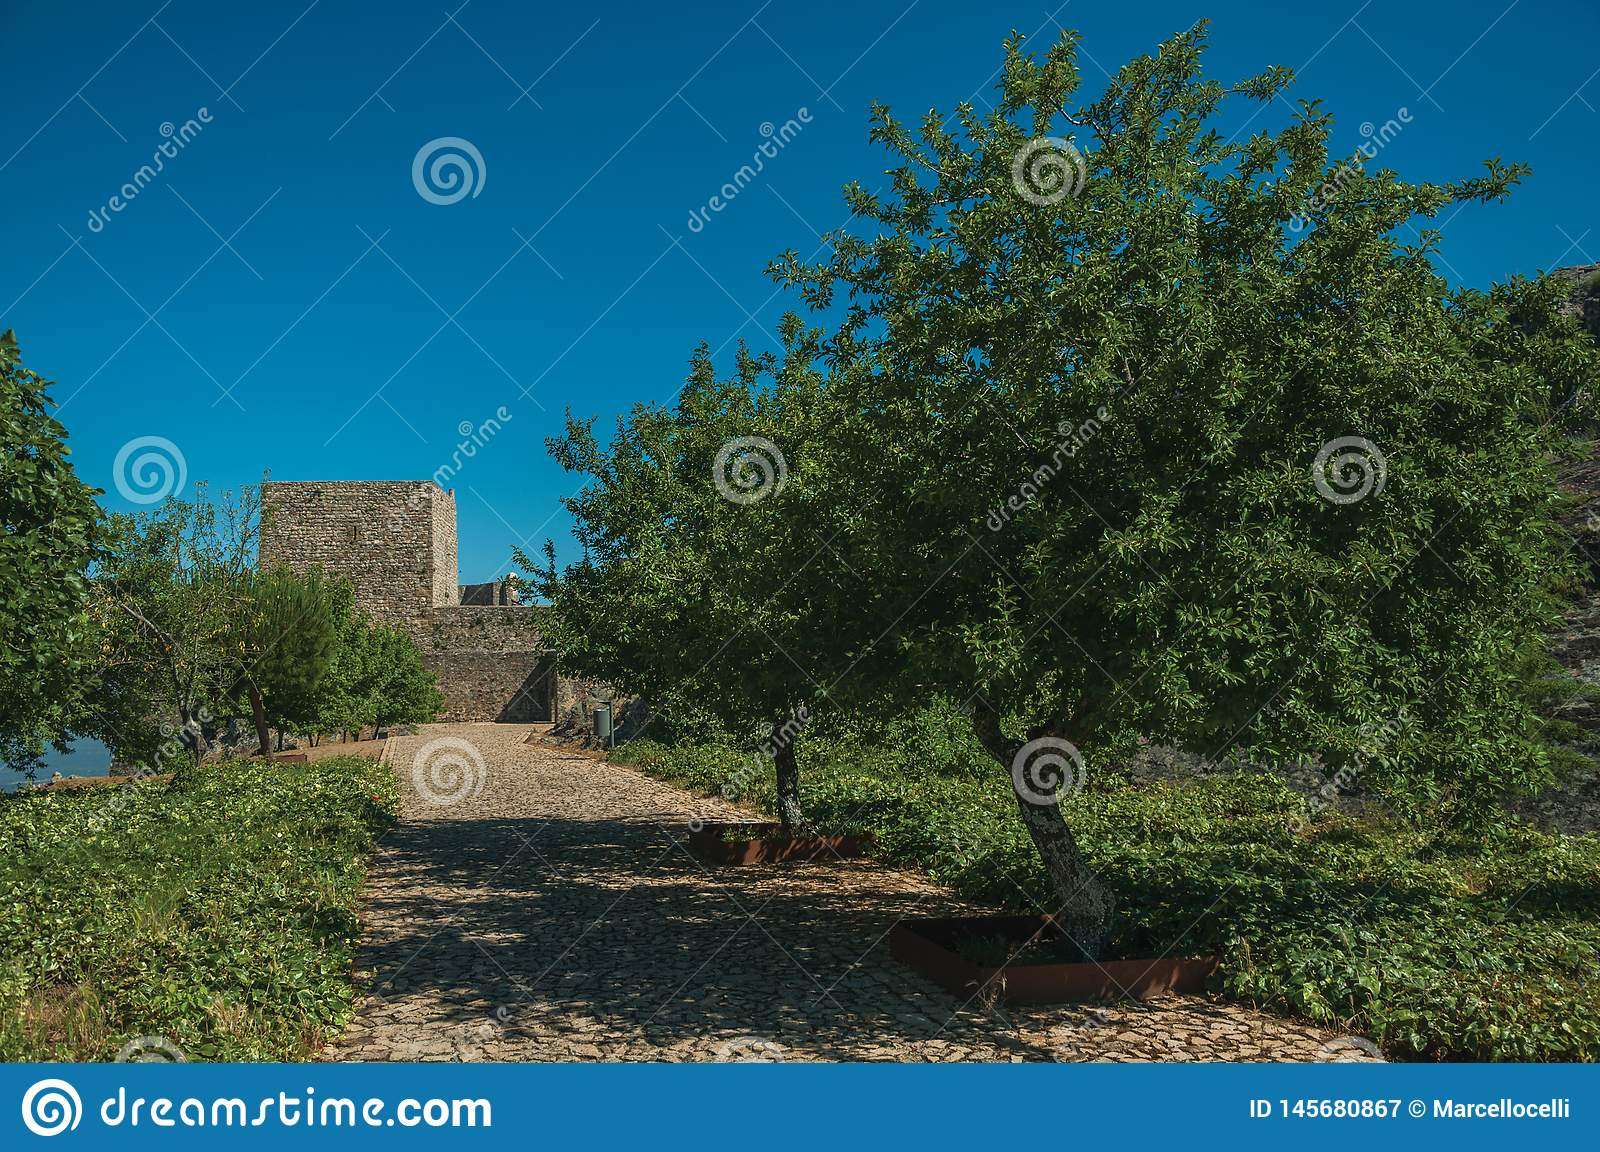 Pathway and wall in a lawn garden with trees at the Marvao Castle